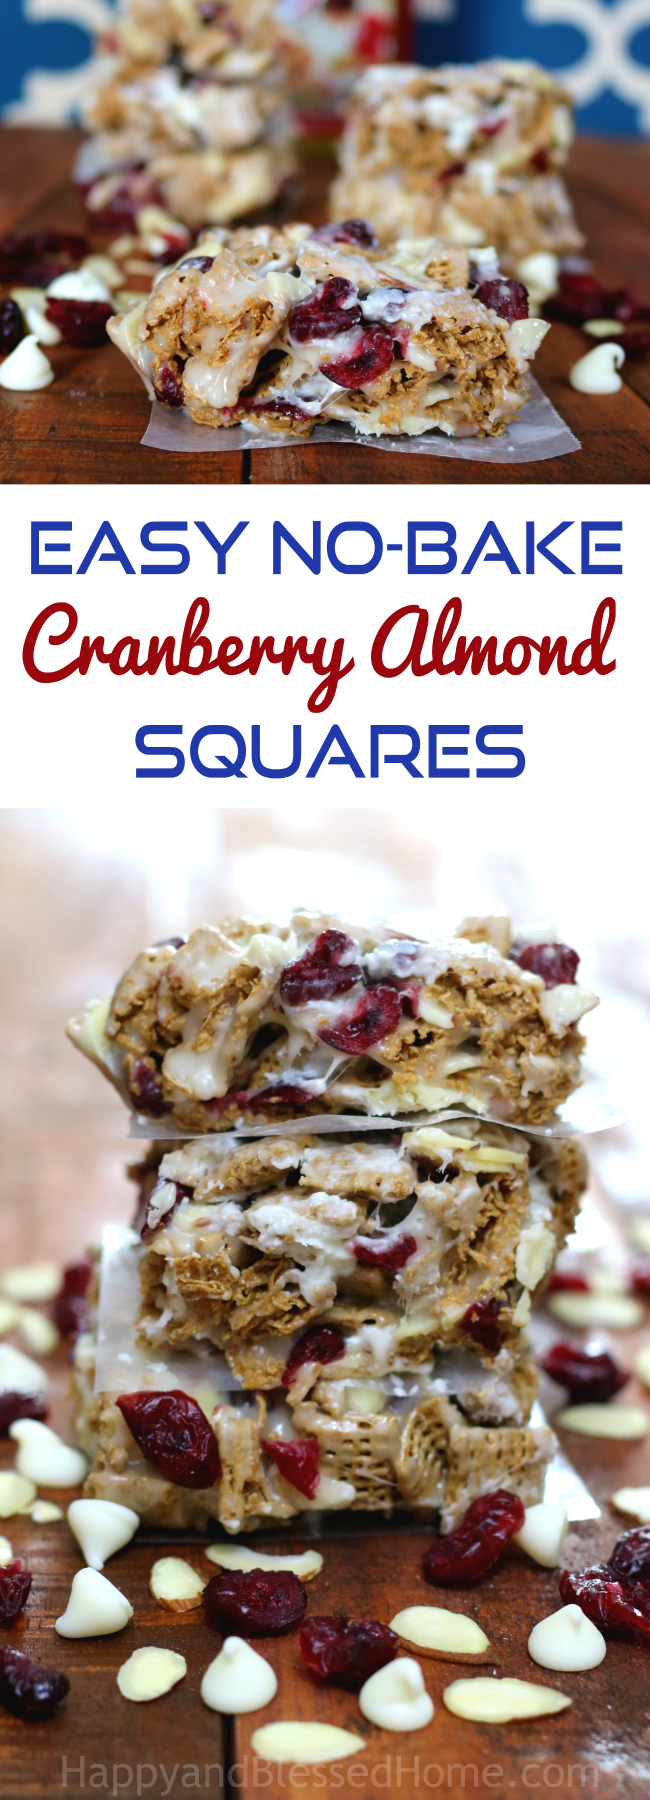 Easy No Bake Crunchy Cranberry Almond Squares an easy after school snack by HappyandBlessedHome.com